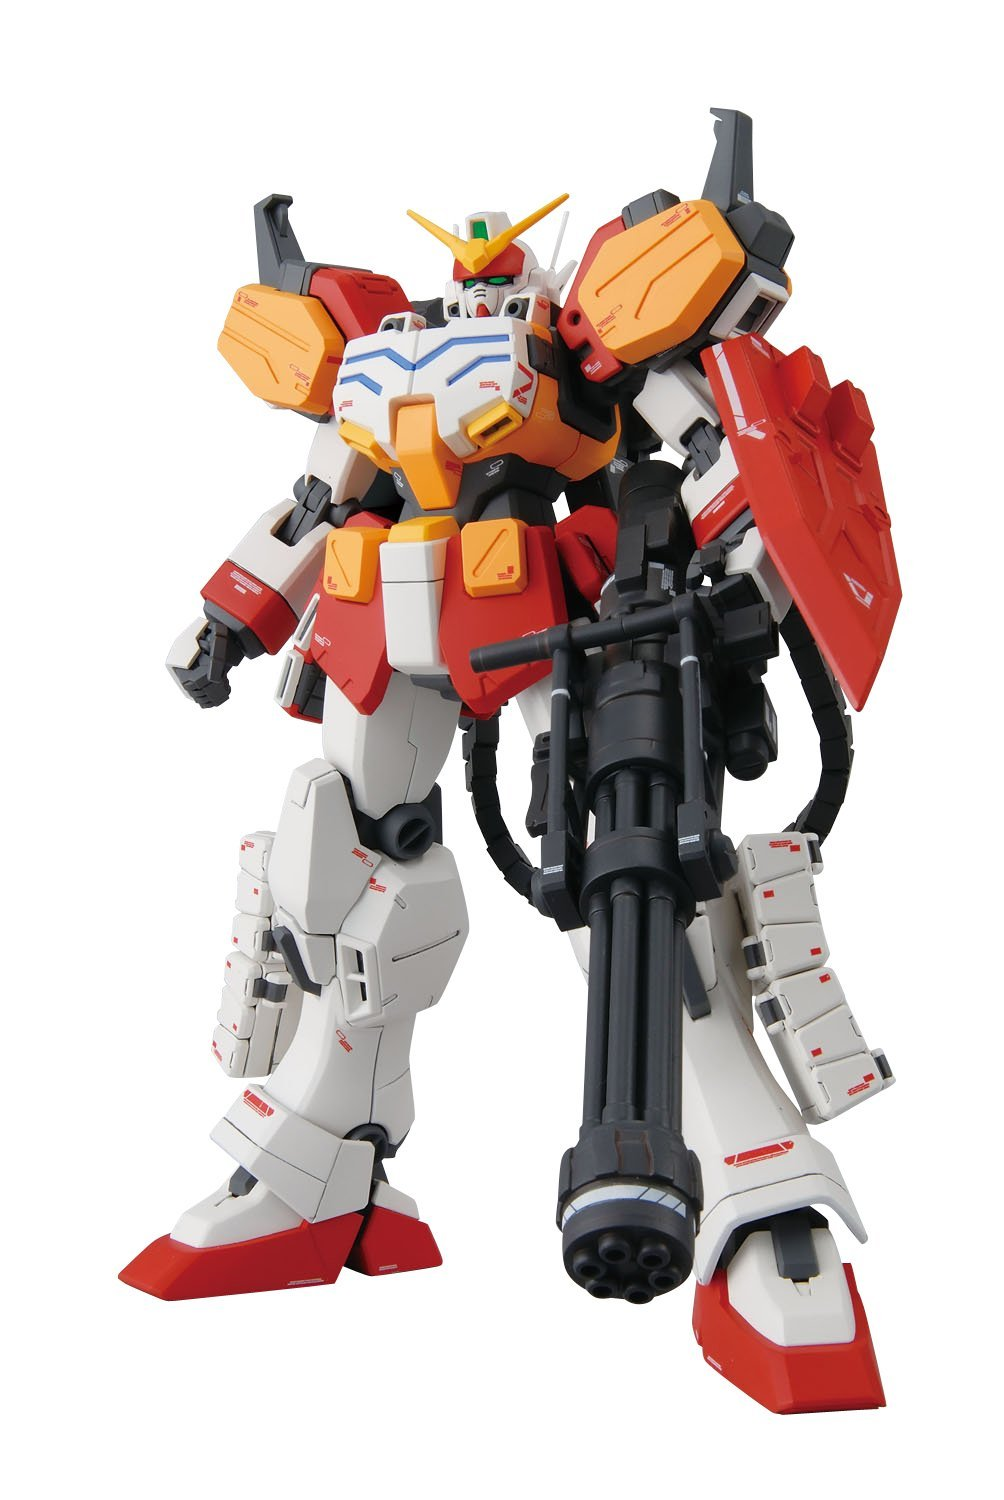 MG 1/100 XXXG-01H ガンダムヘビーアームズ EW [Gundam Heavyarms EW] 0173903 4543112739032